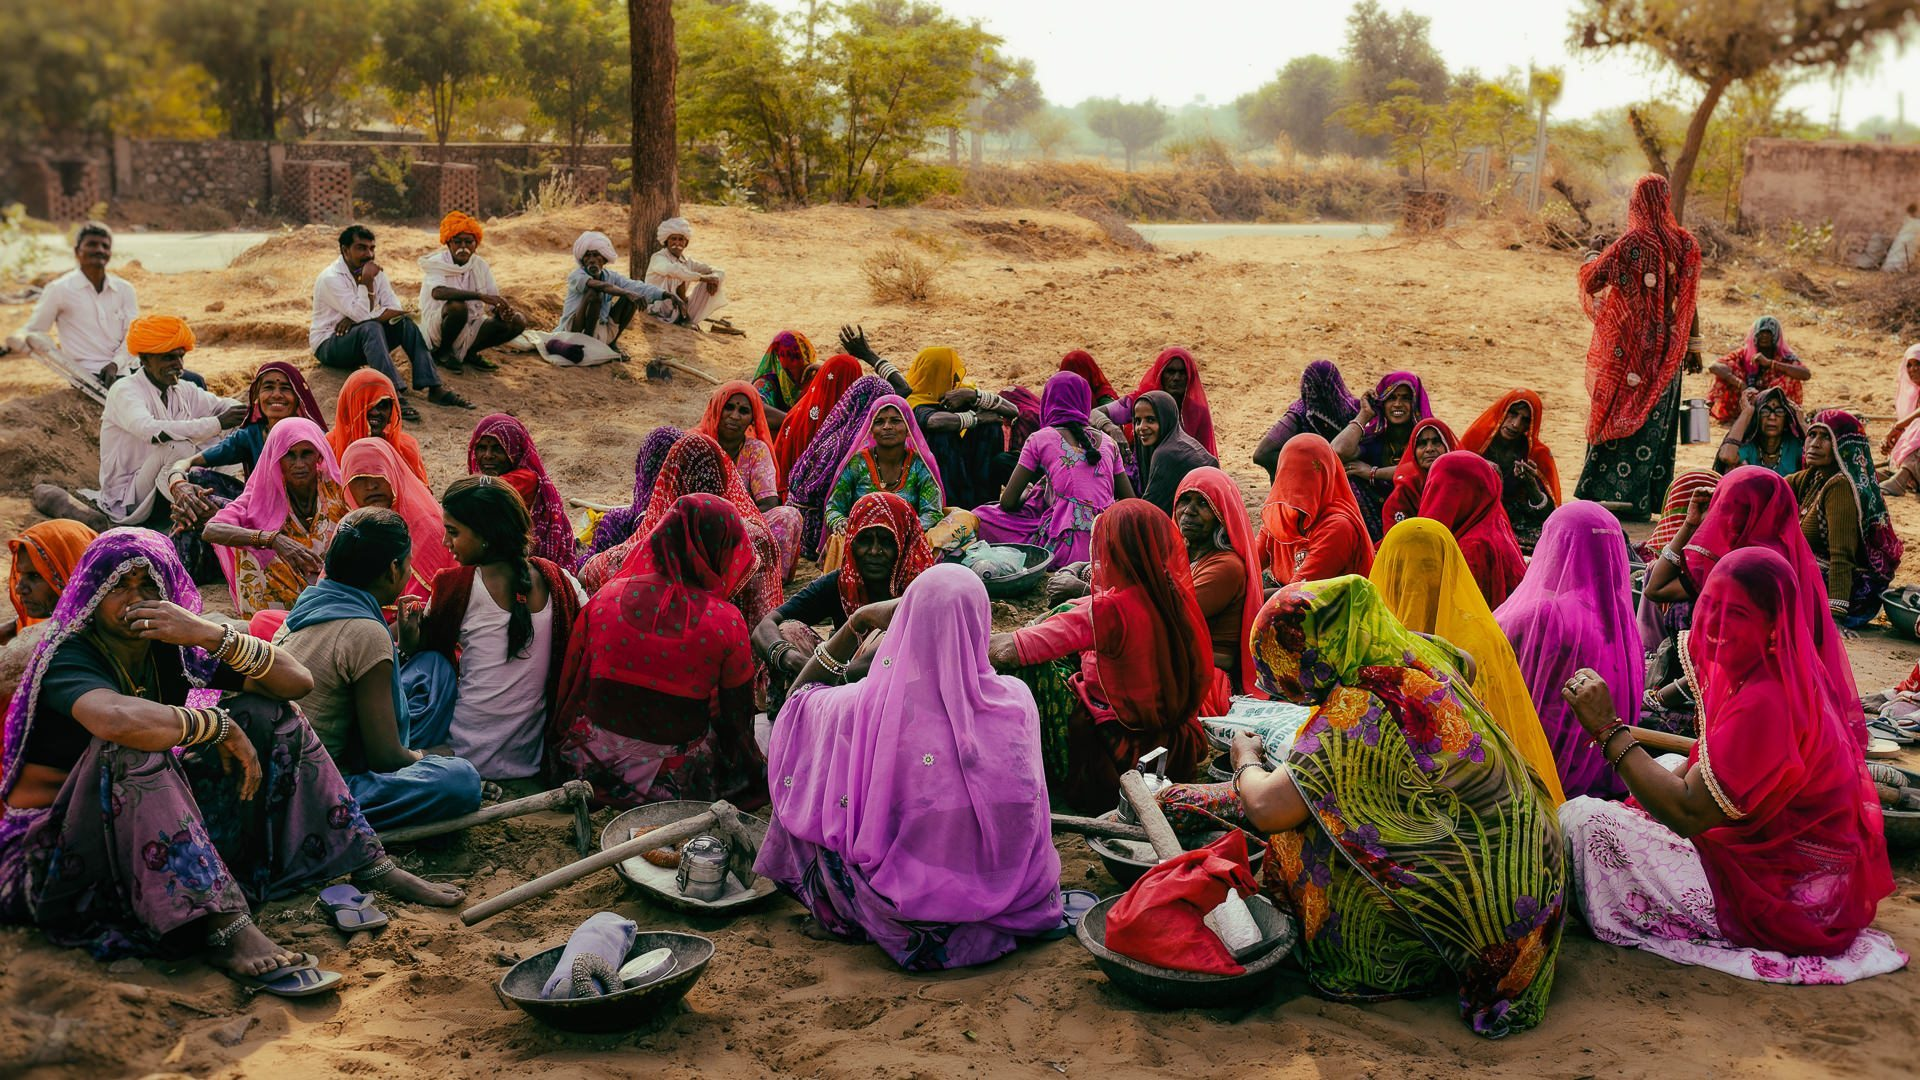 women gather in rajasthan wearing colourful red sarees © Hamish Scott-Brown